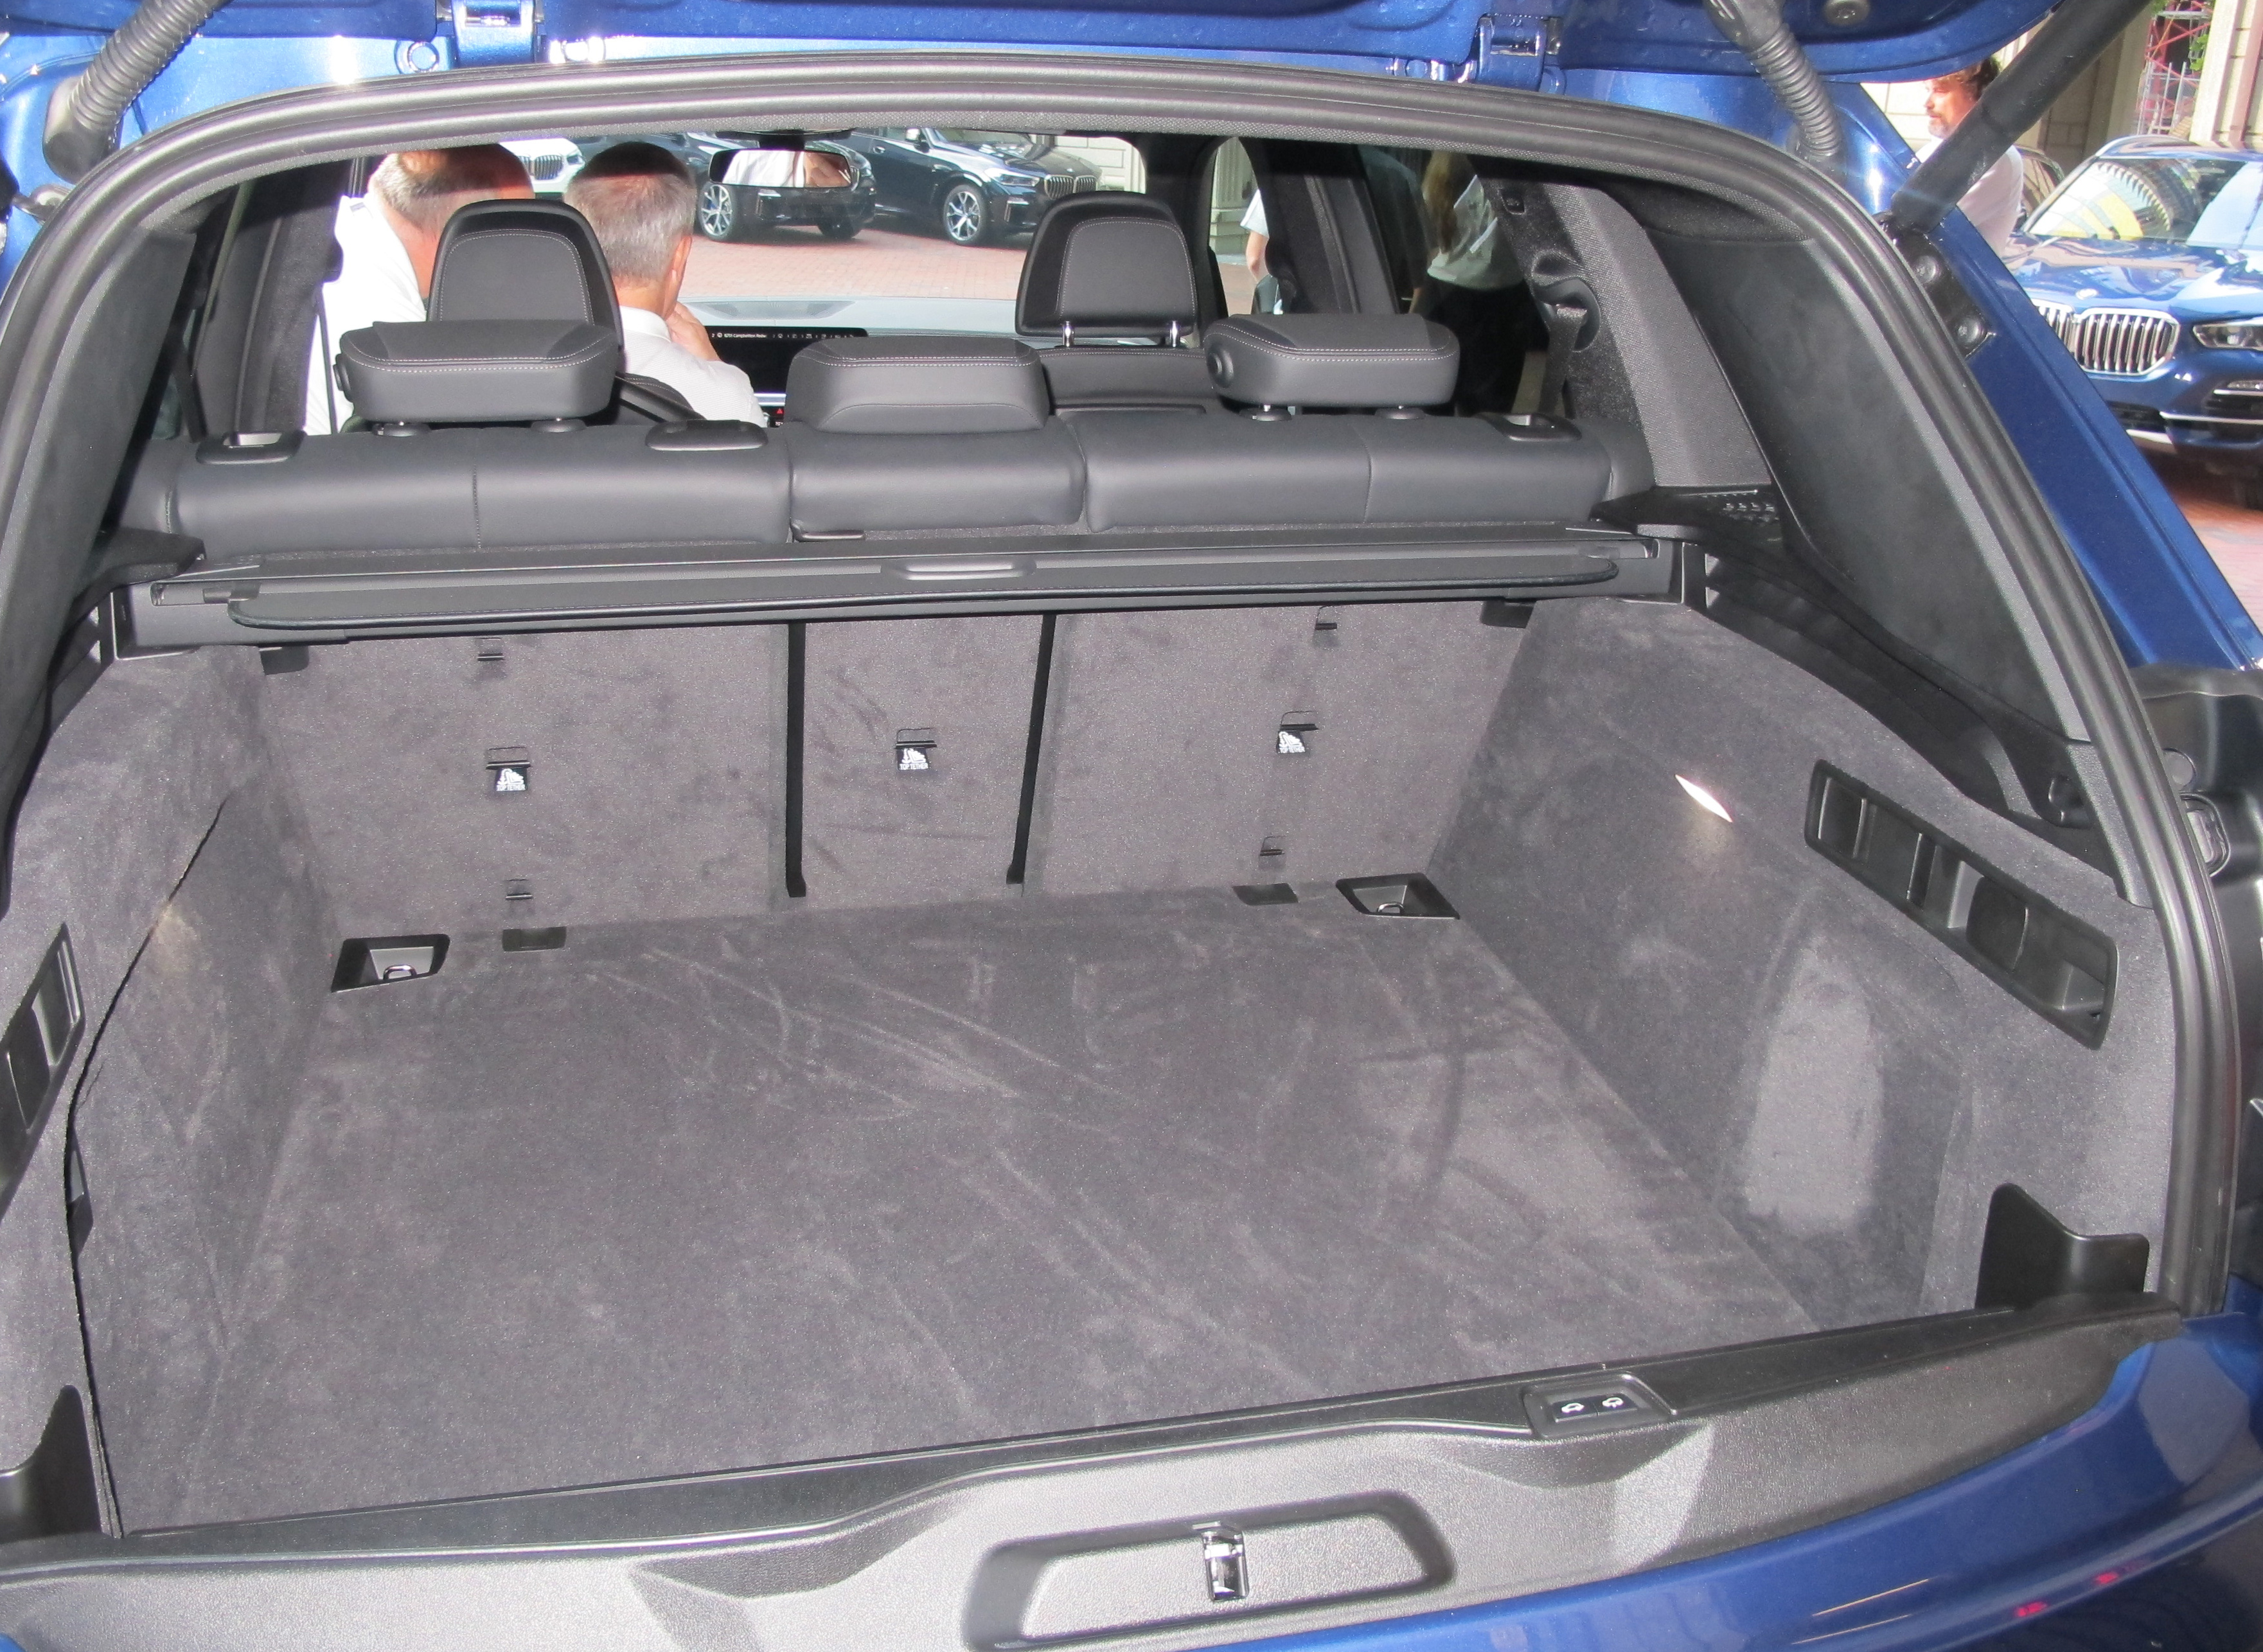 Bmw X5 Cargo Space Behind Second Row How Much Cargo Space